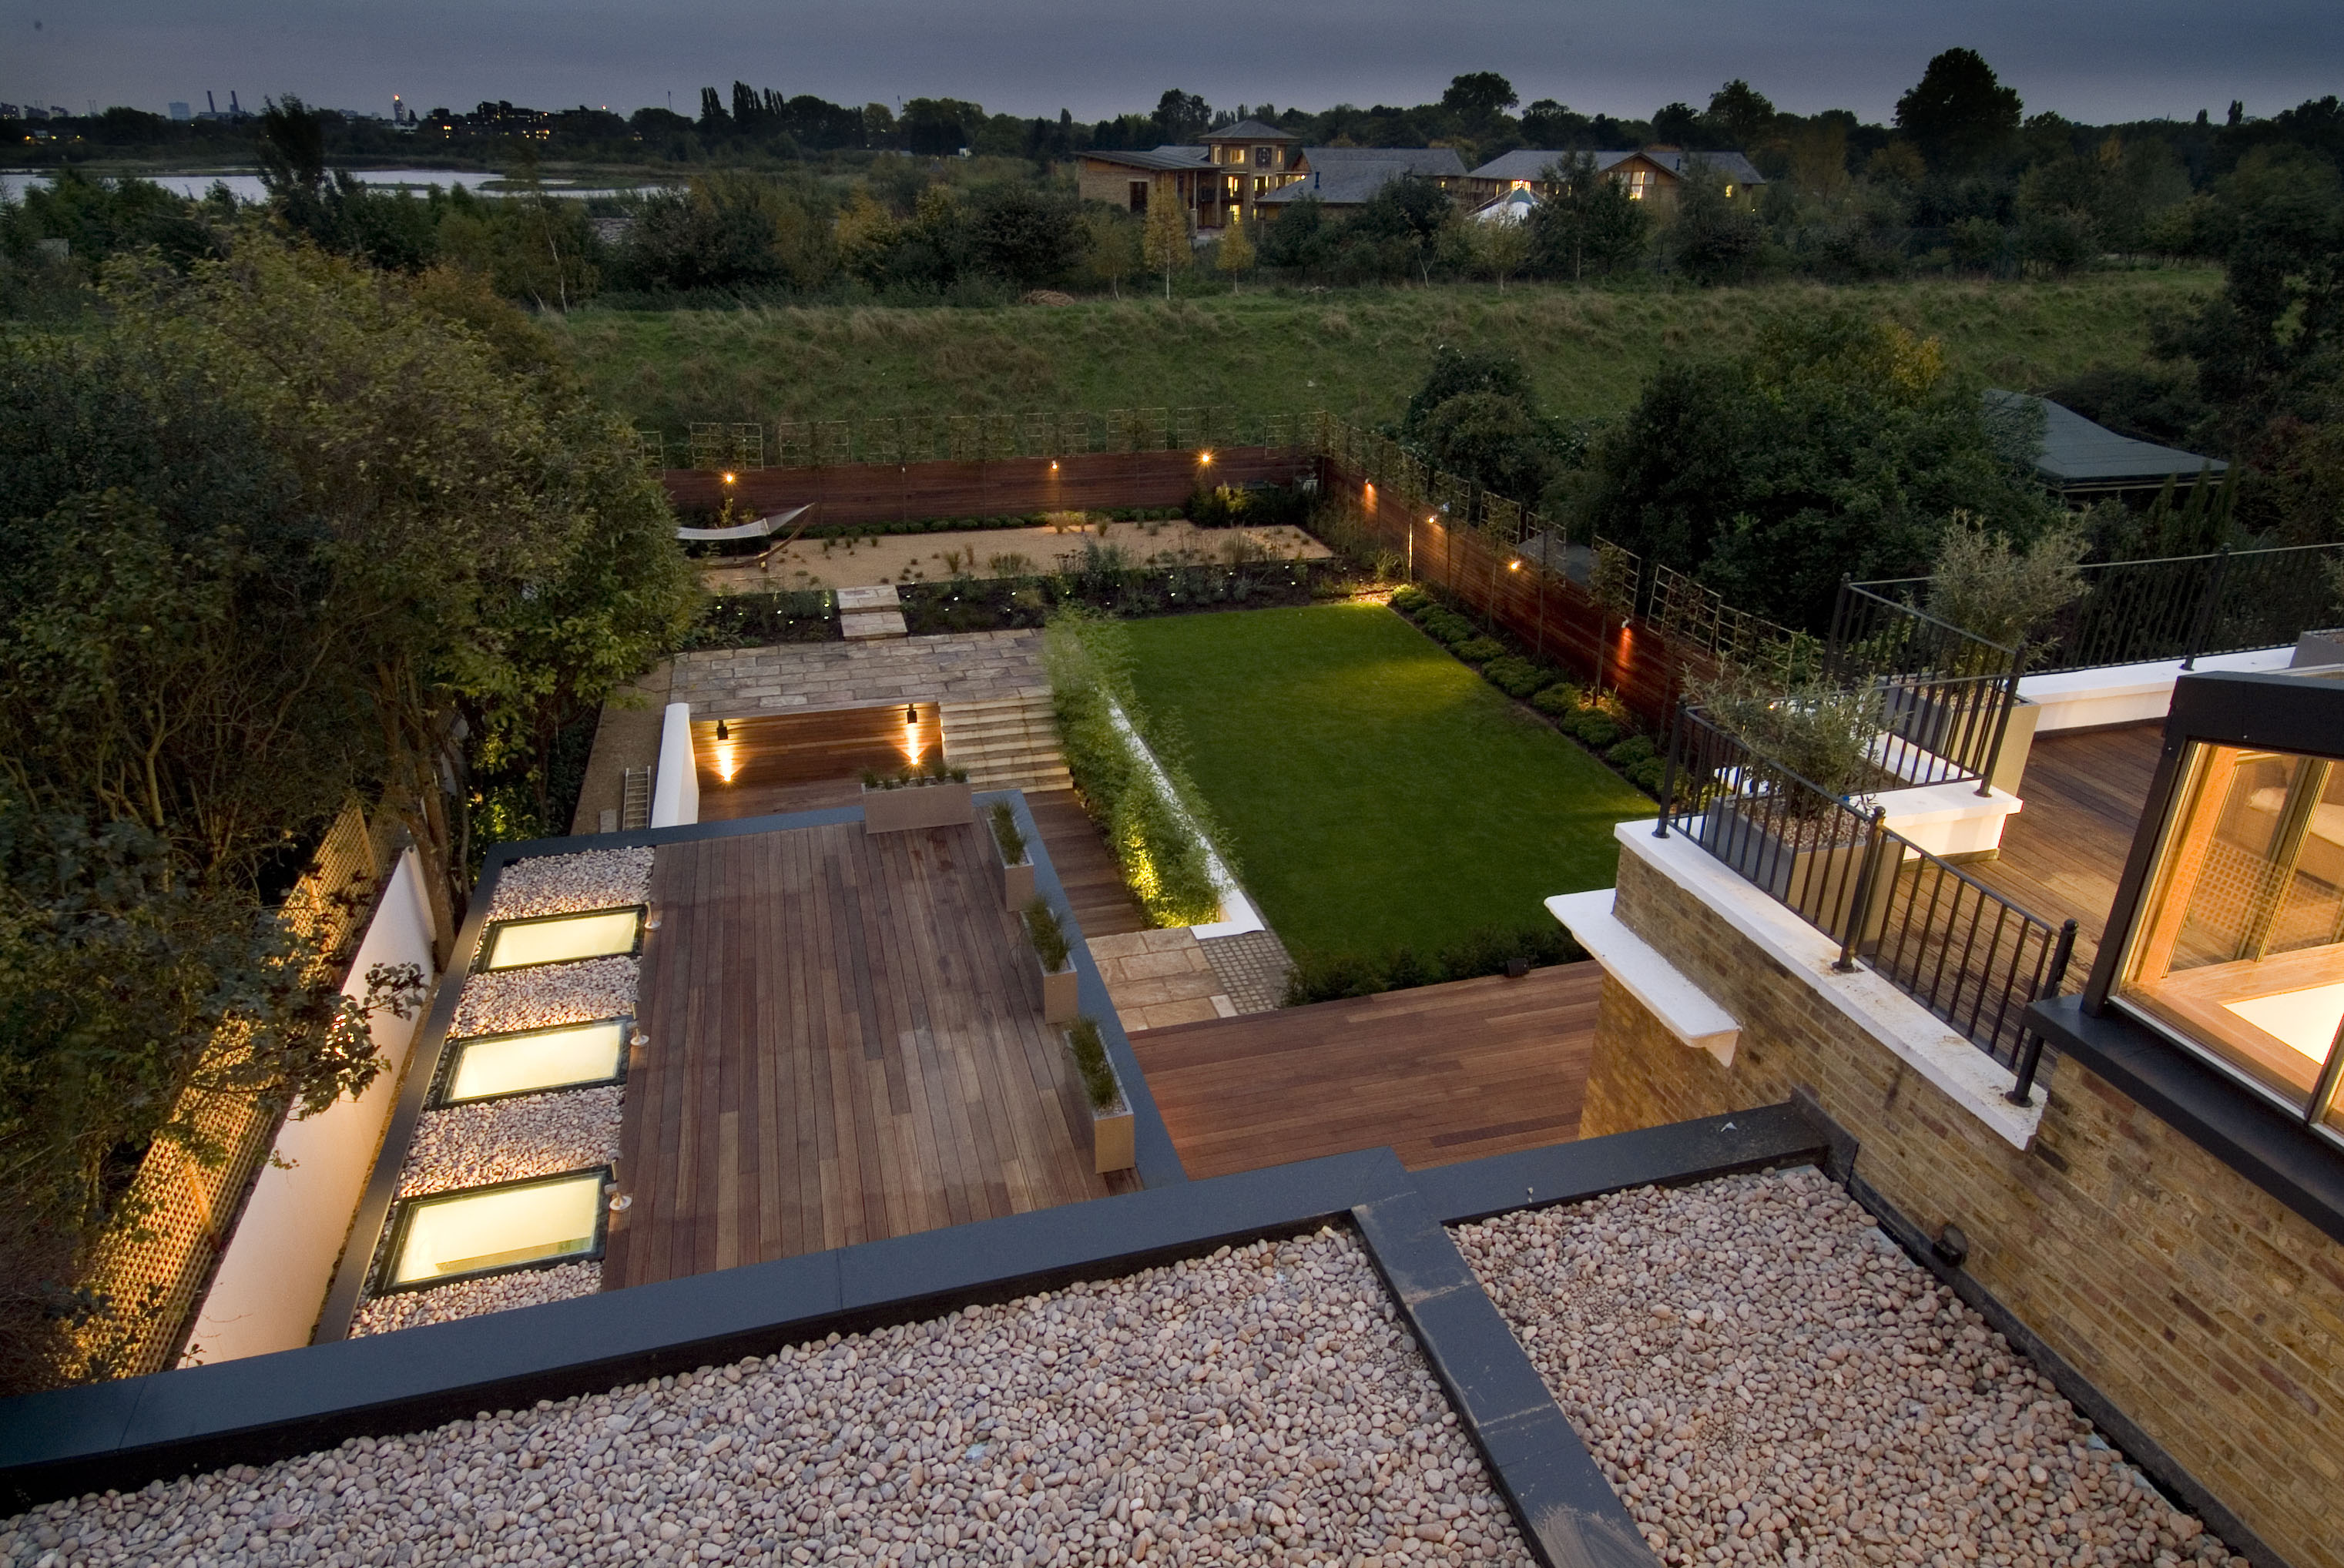 creativemass - basement and rear extension, landscape design, terraced landscaping, swimming pool, roof terrace, London